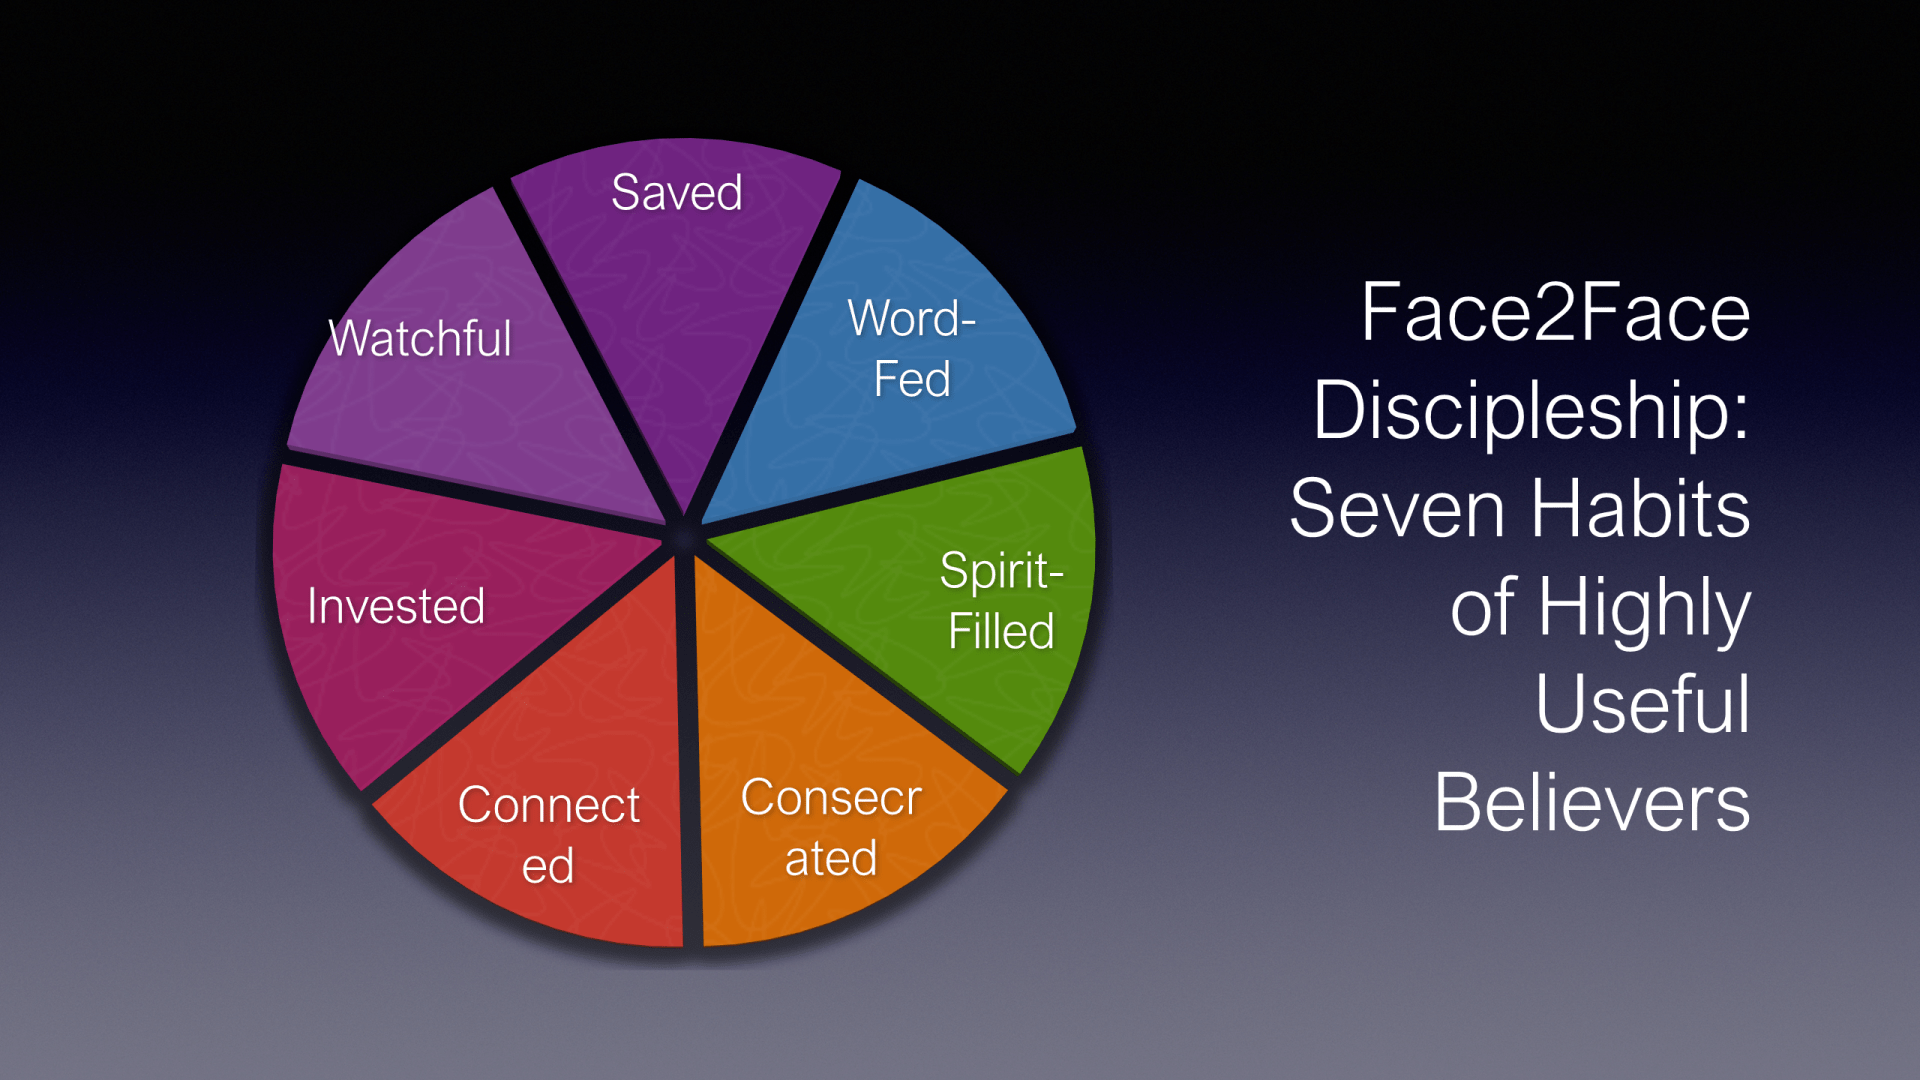 FTF-15 - Face2Face Discipleship - 7 Habits Of Highly Useful Believers (28)